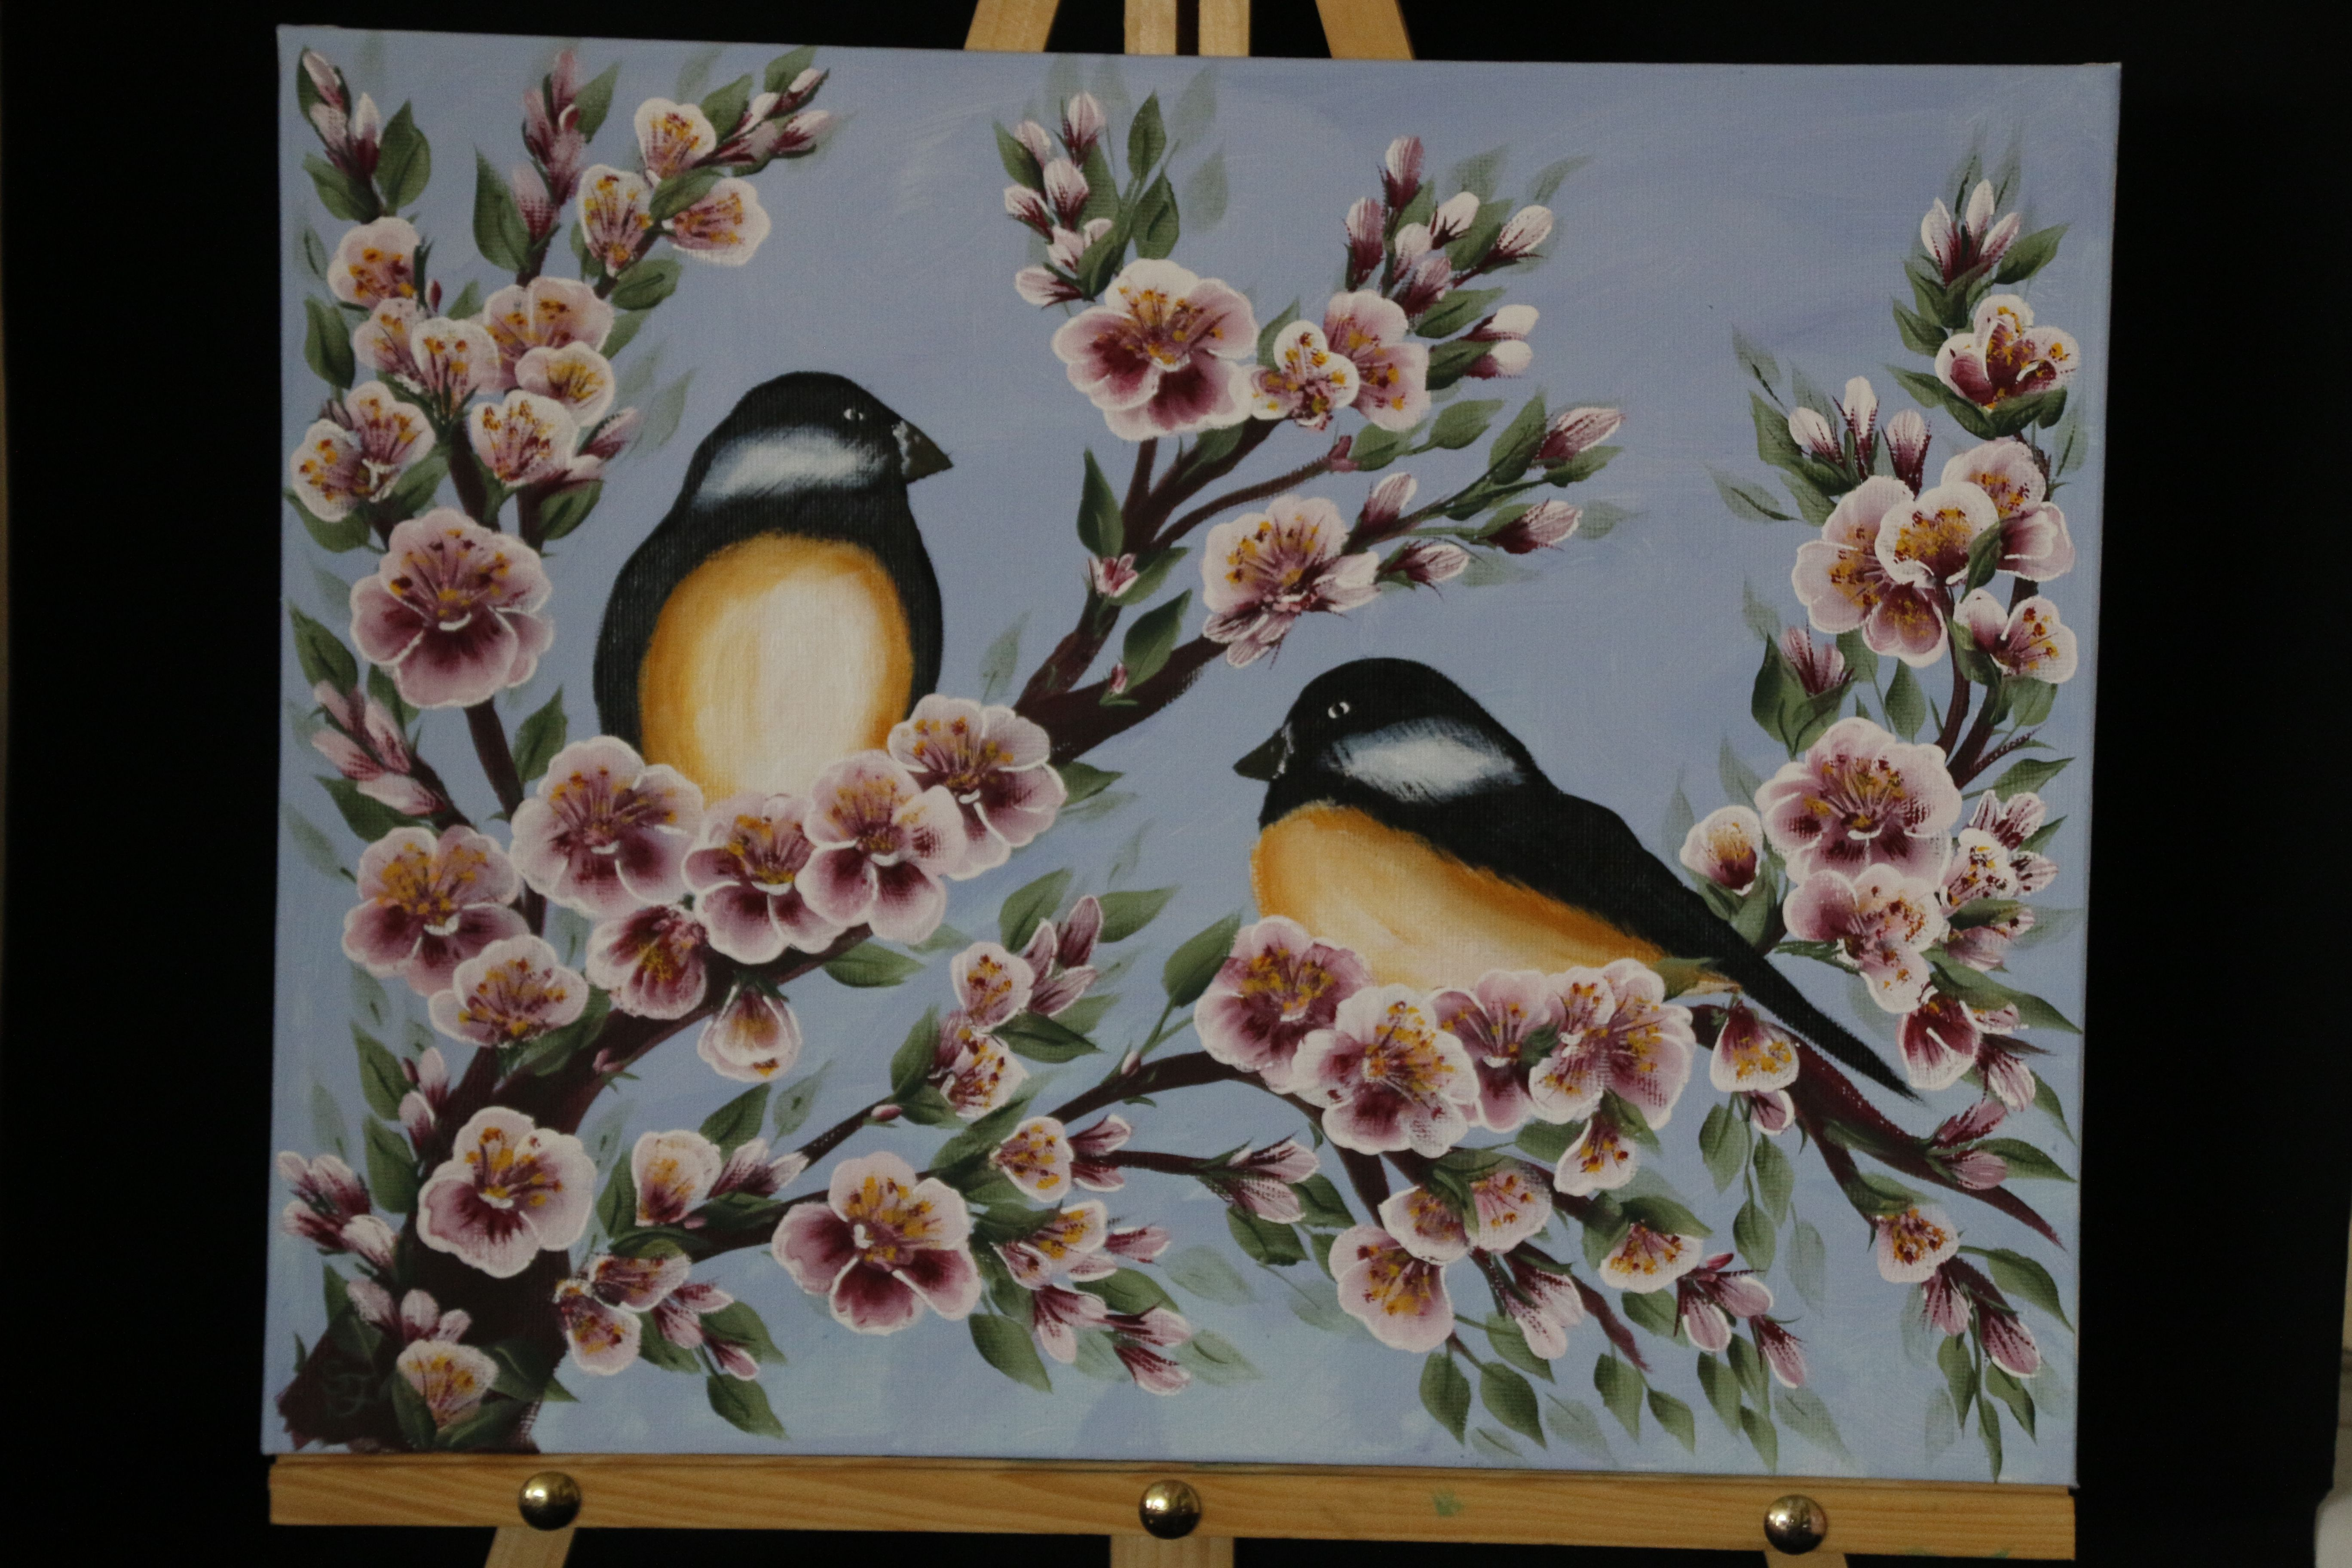 Birds On Cherry Blossoms Painted Using One Stroke Method